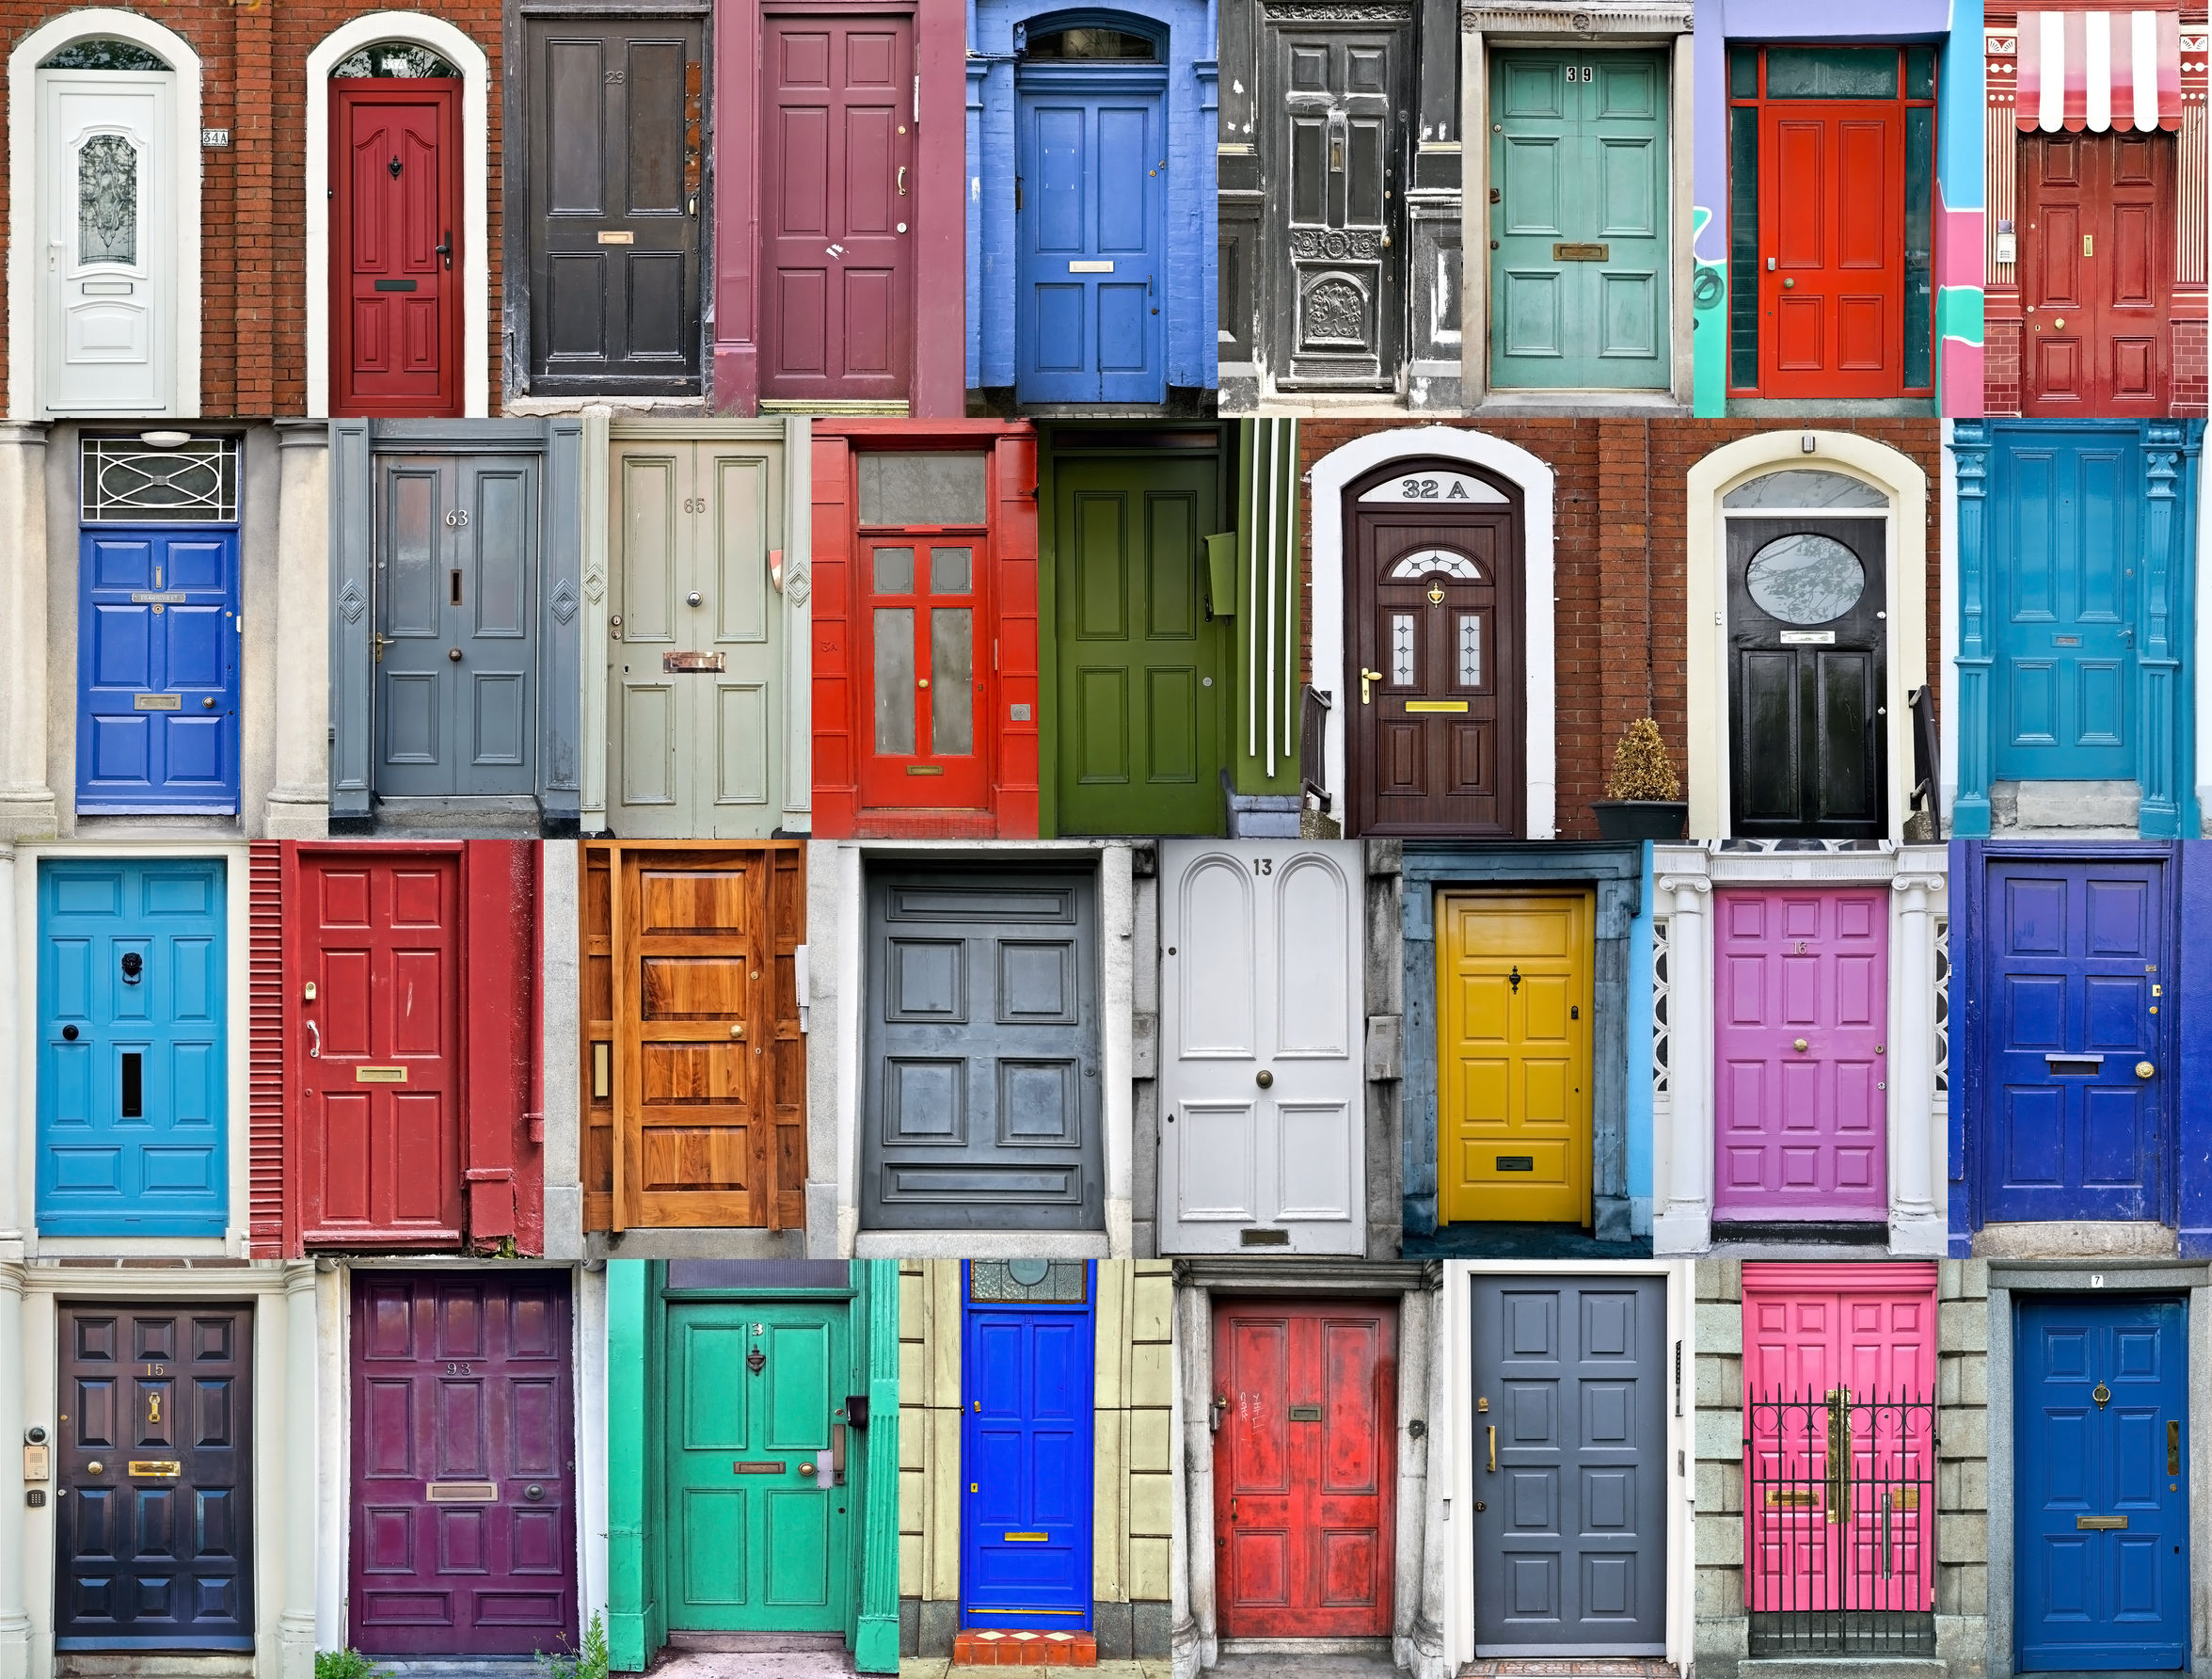 43715354 - doors of dublin, ireland